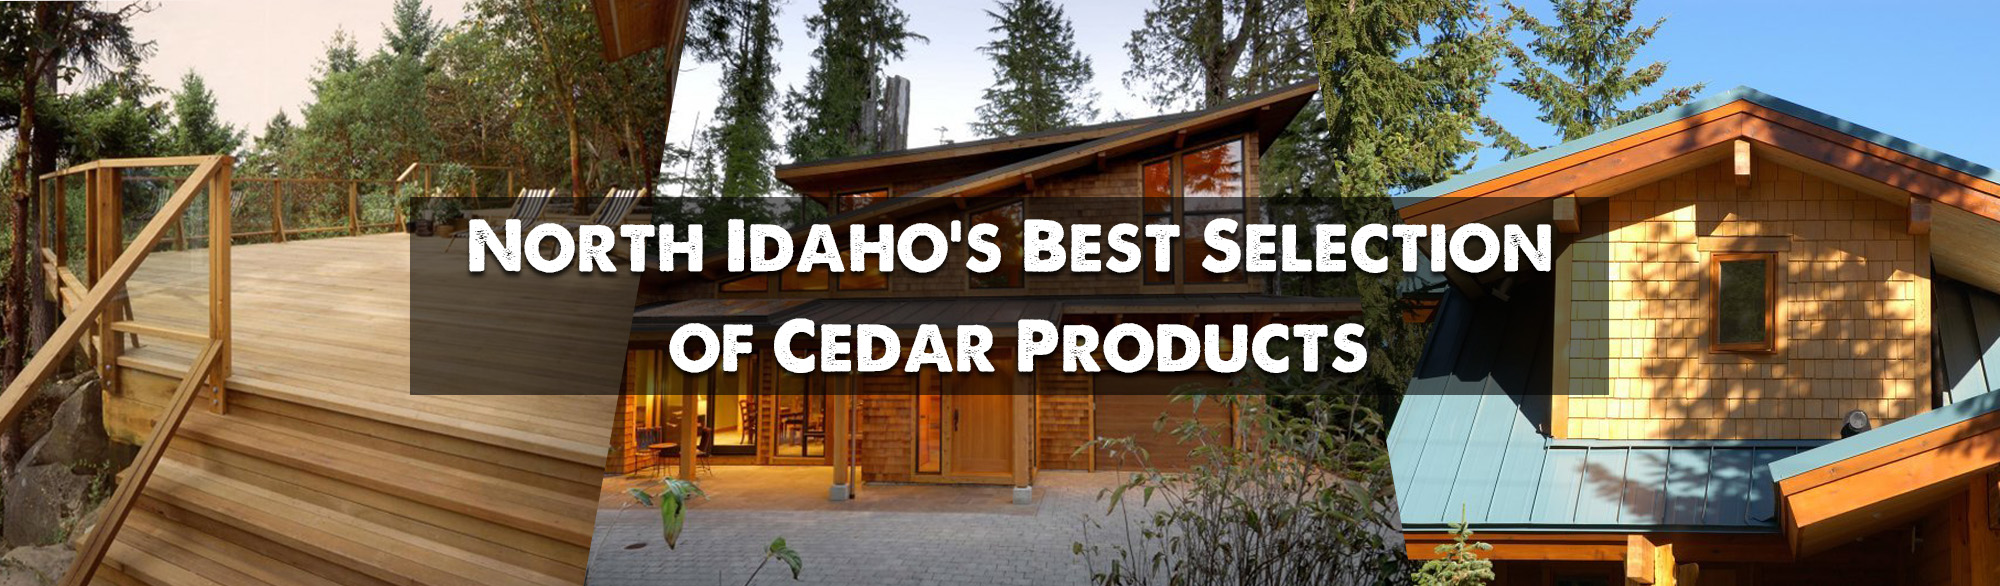 North Idaho's Best Cedar Products